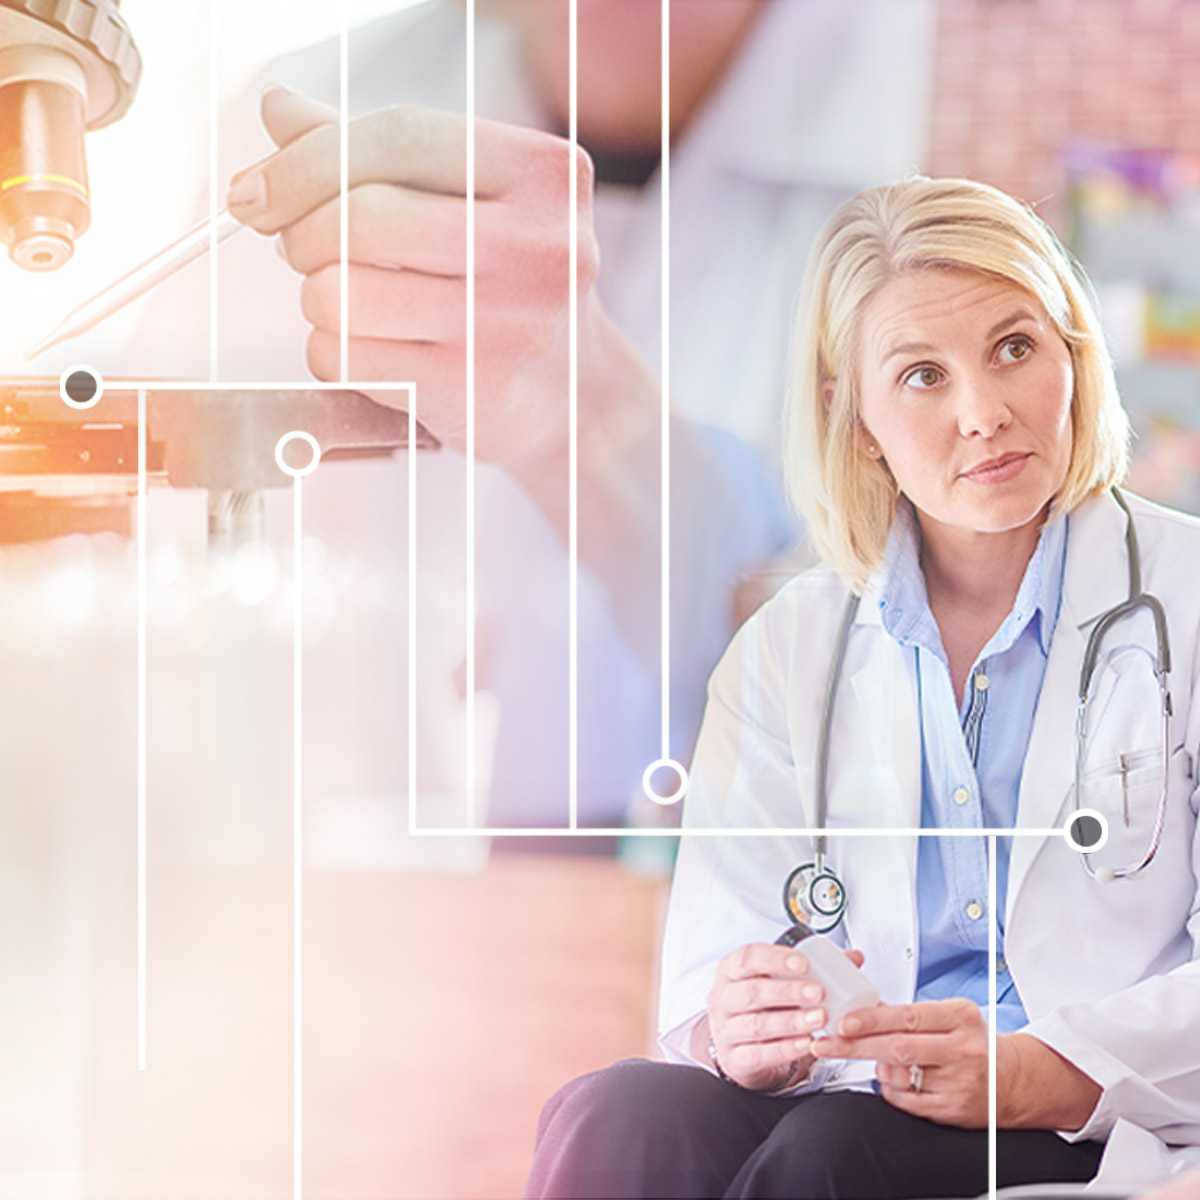 Behind the Scenes Health Care: 10 Non-Clinical Physician Jobs Square